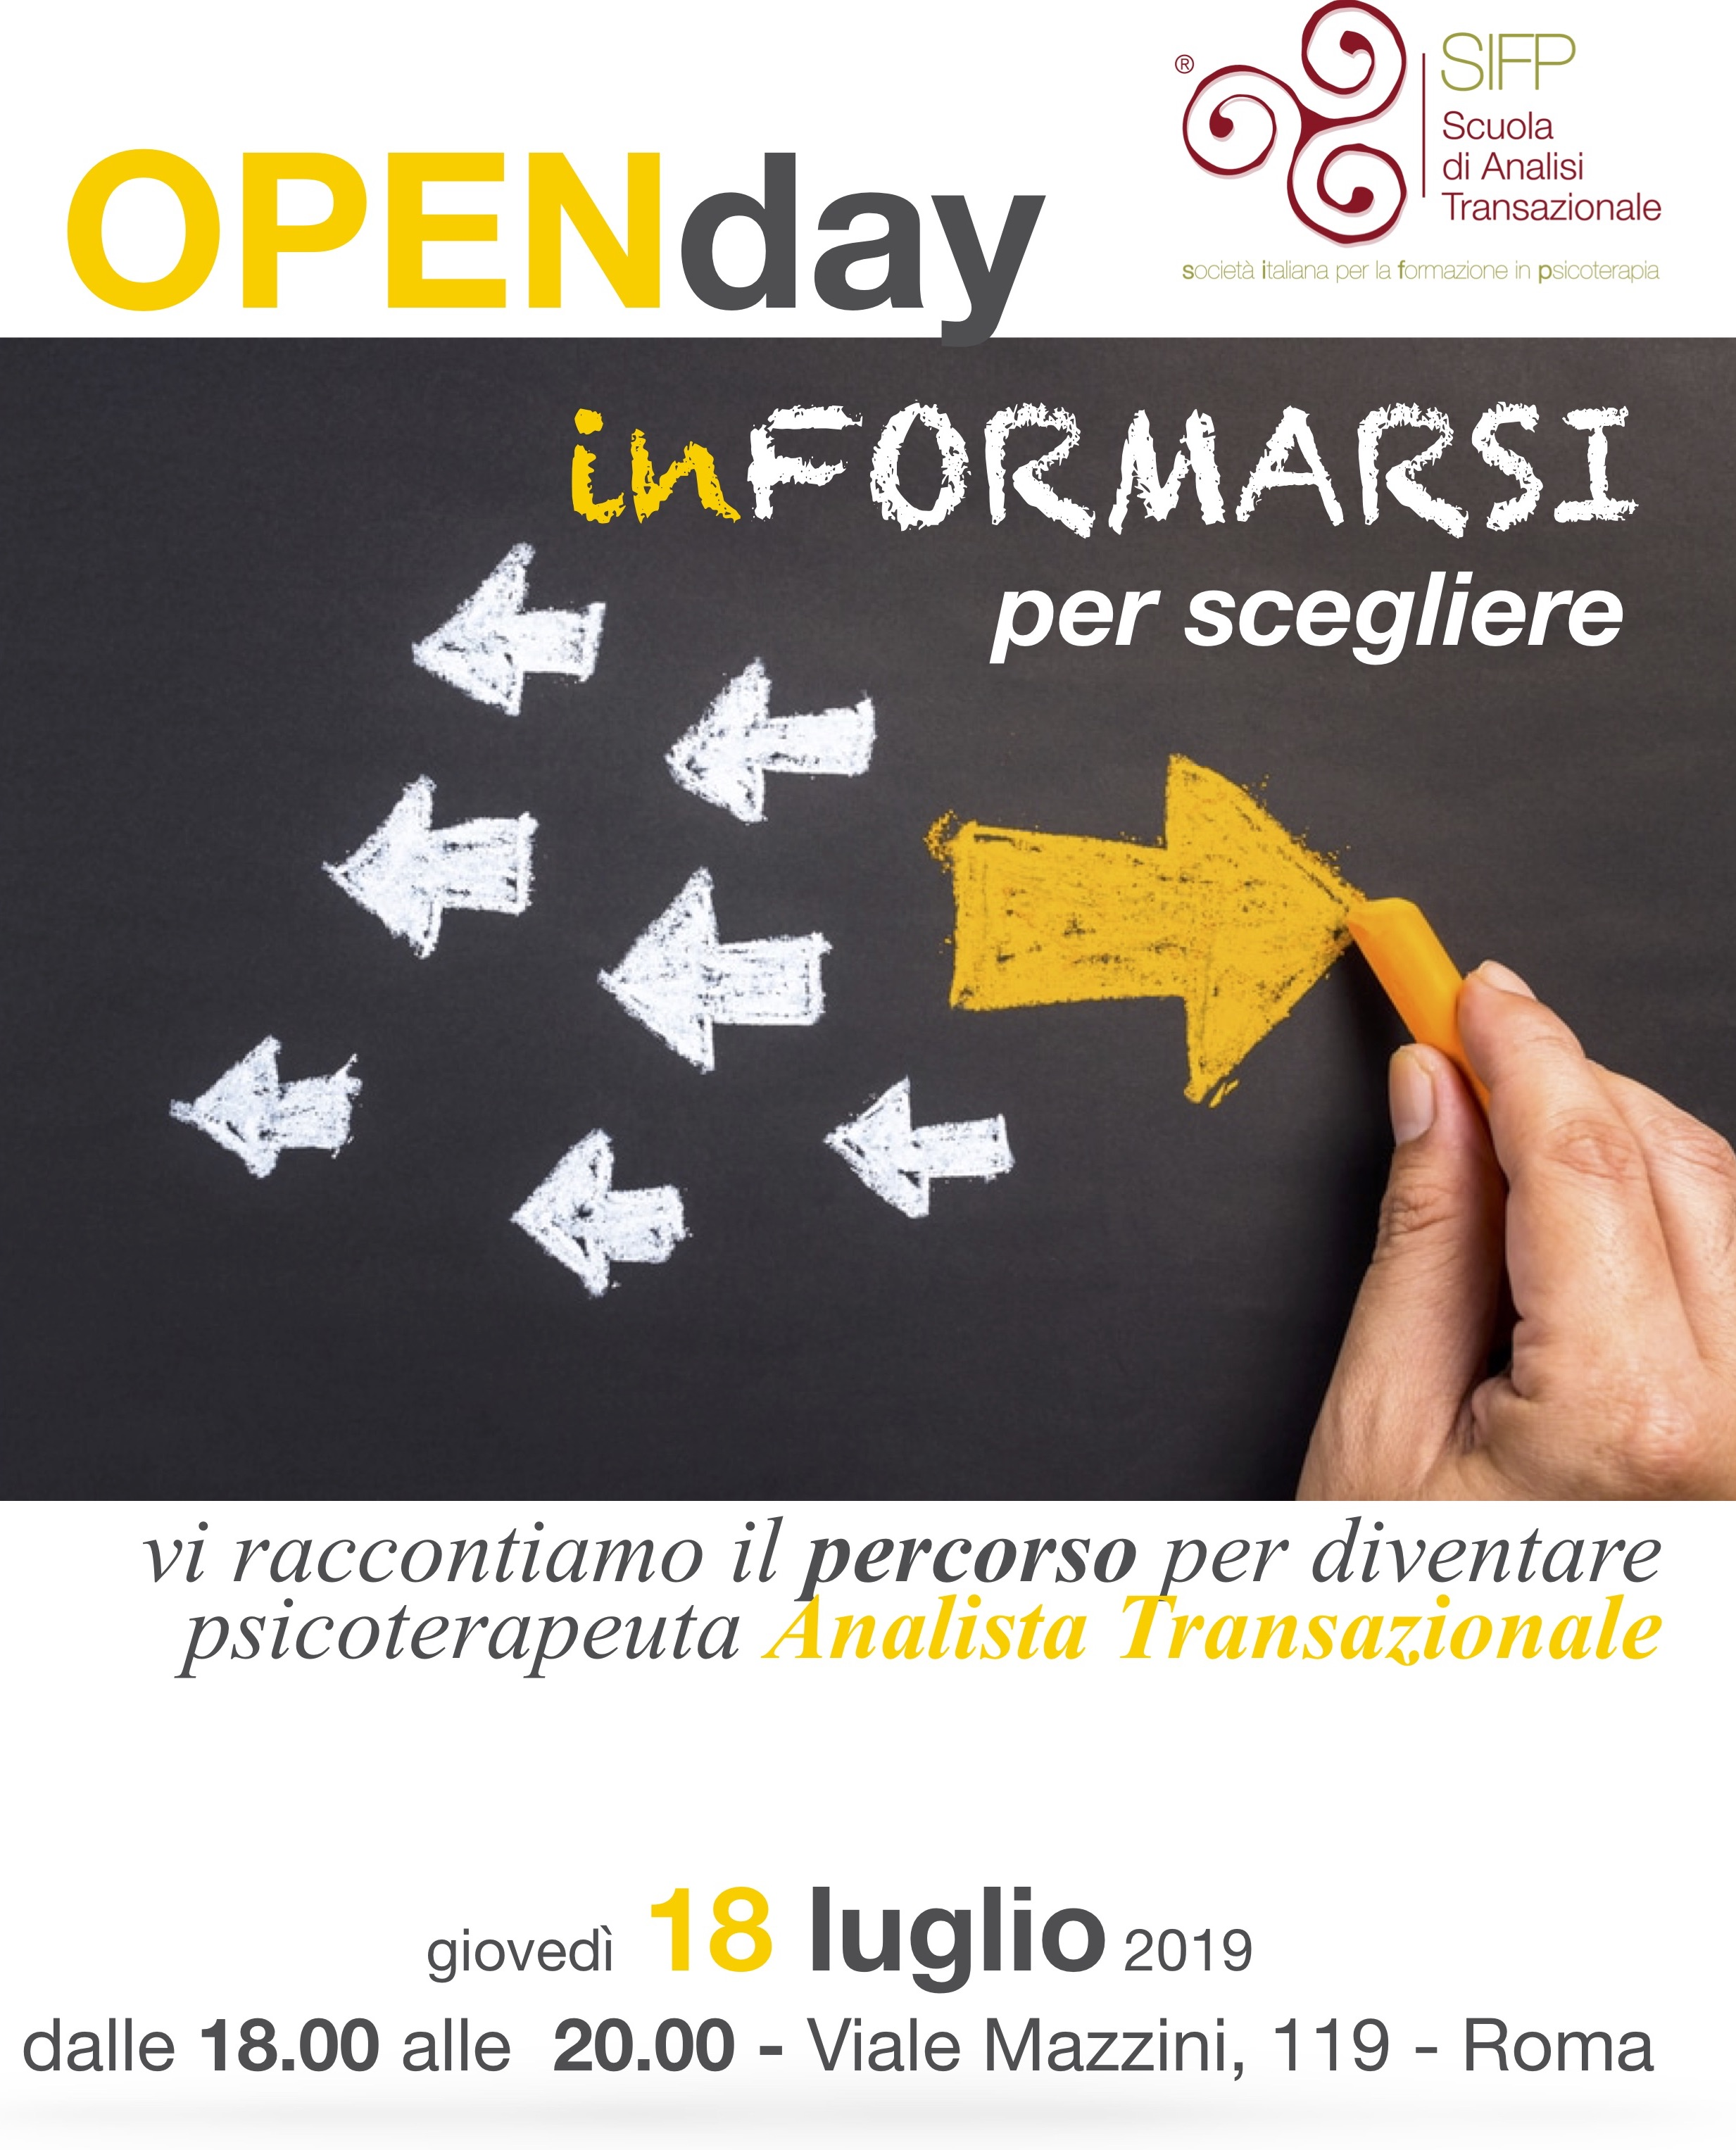 SIFP-OpenDAY-2019-luglio